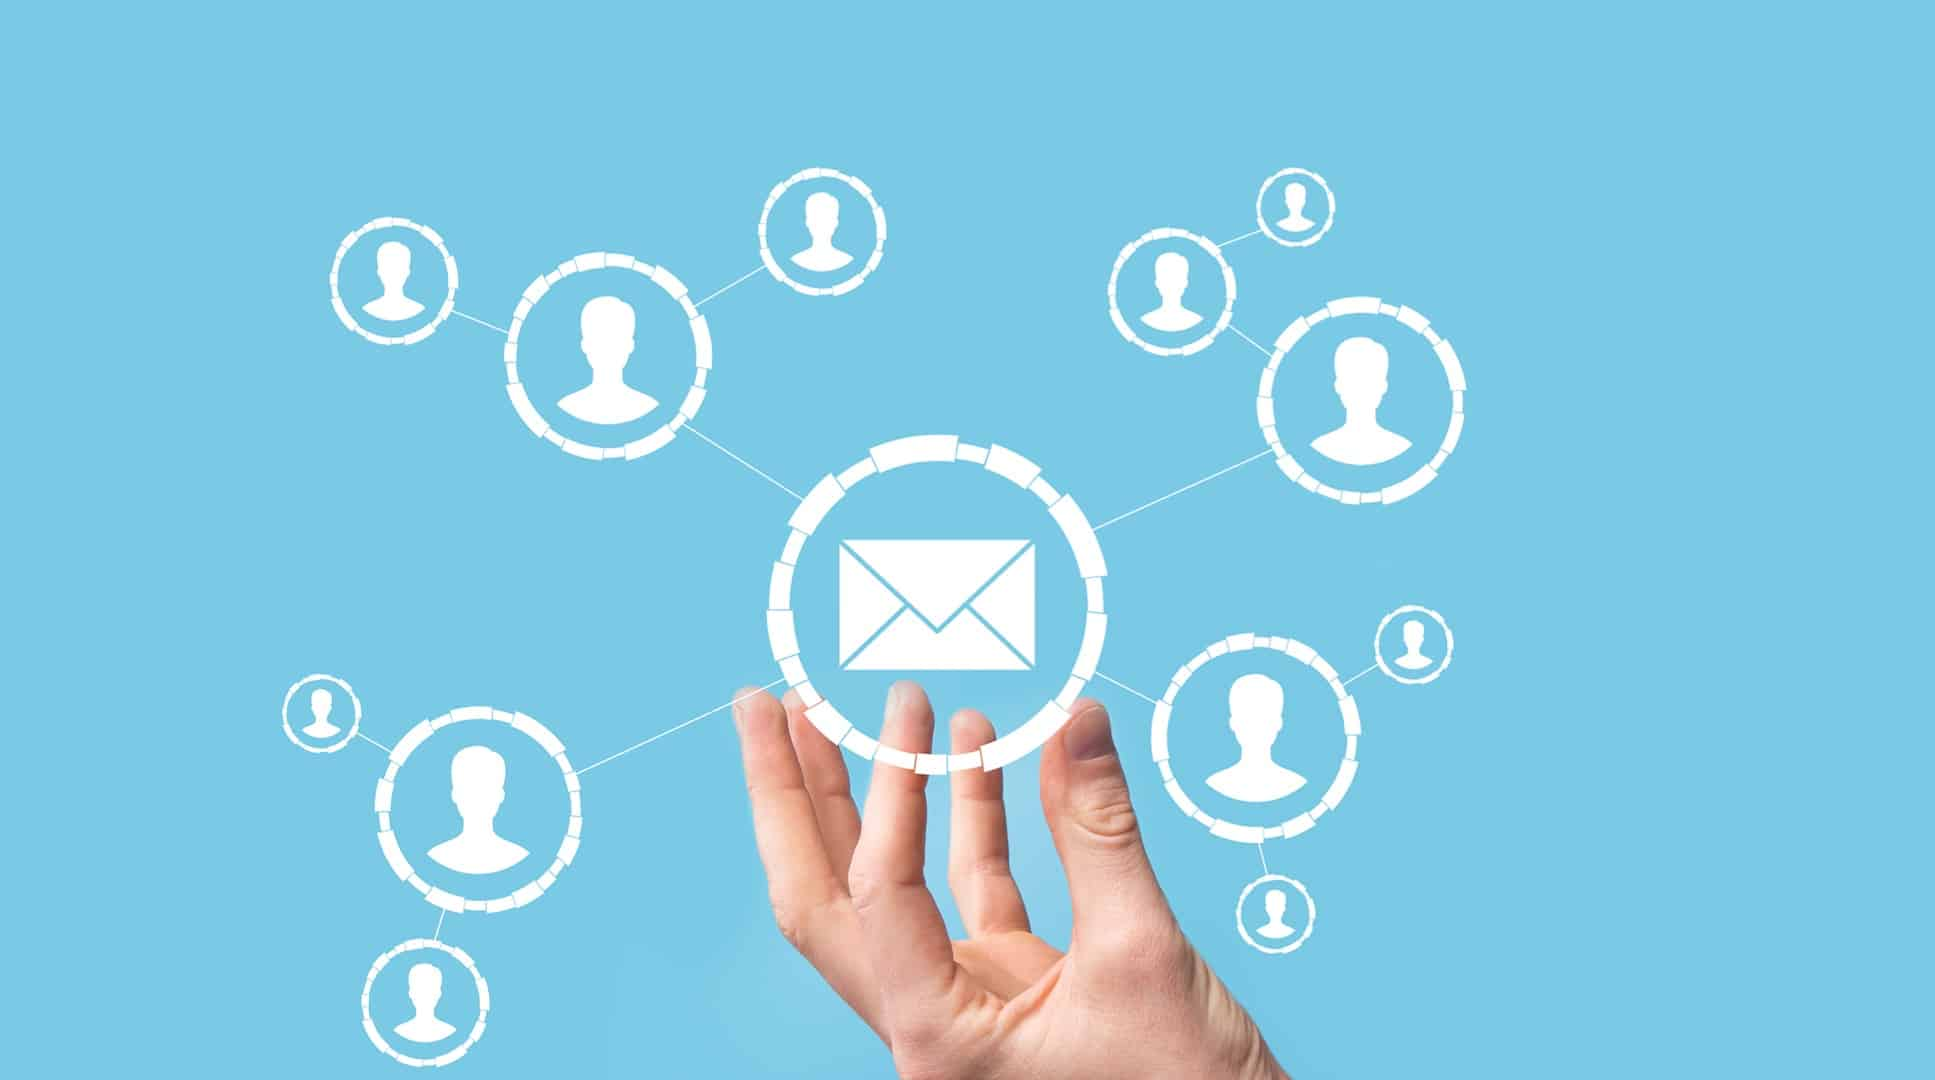 keap is an email marketing tool